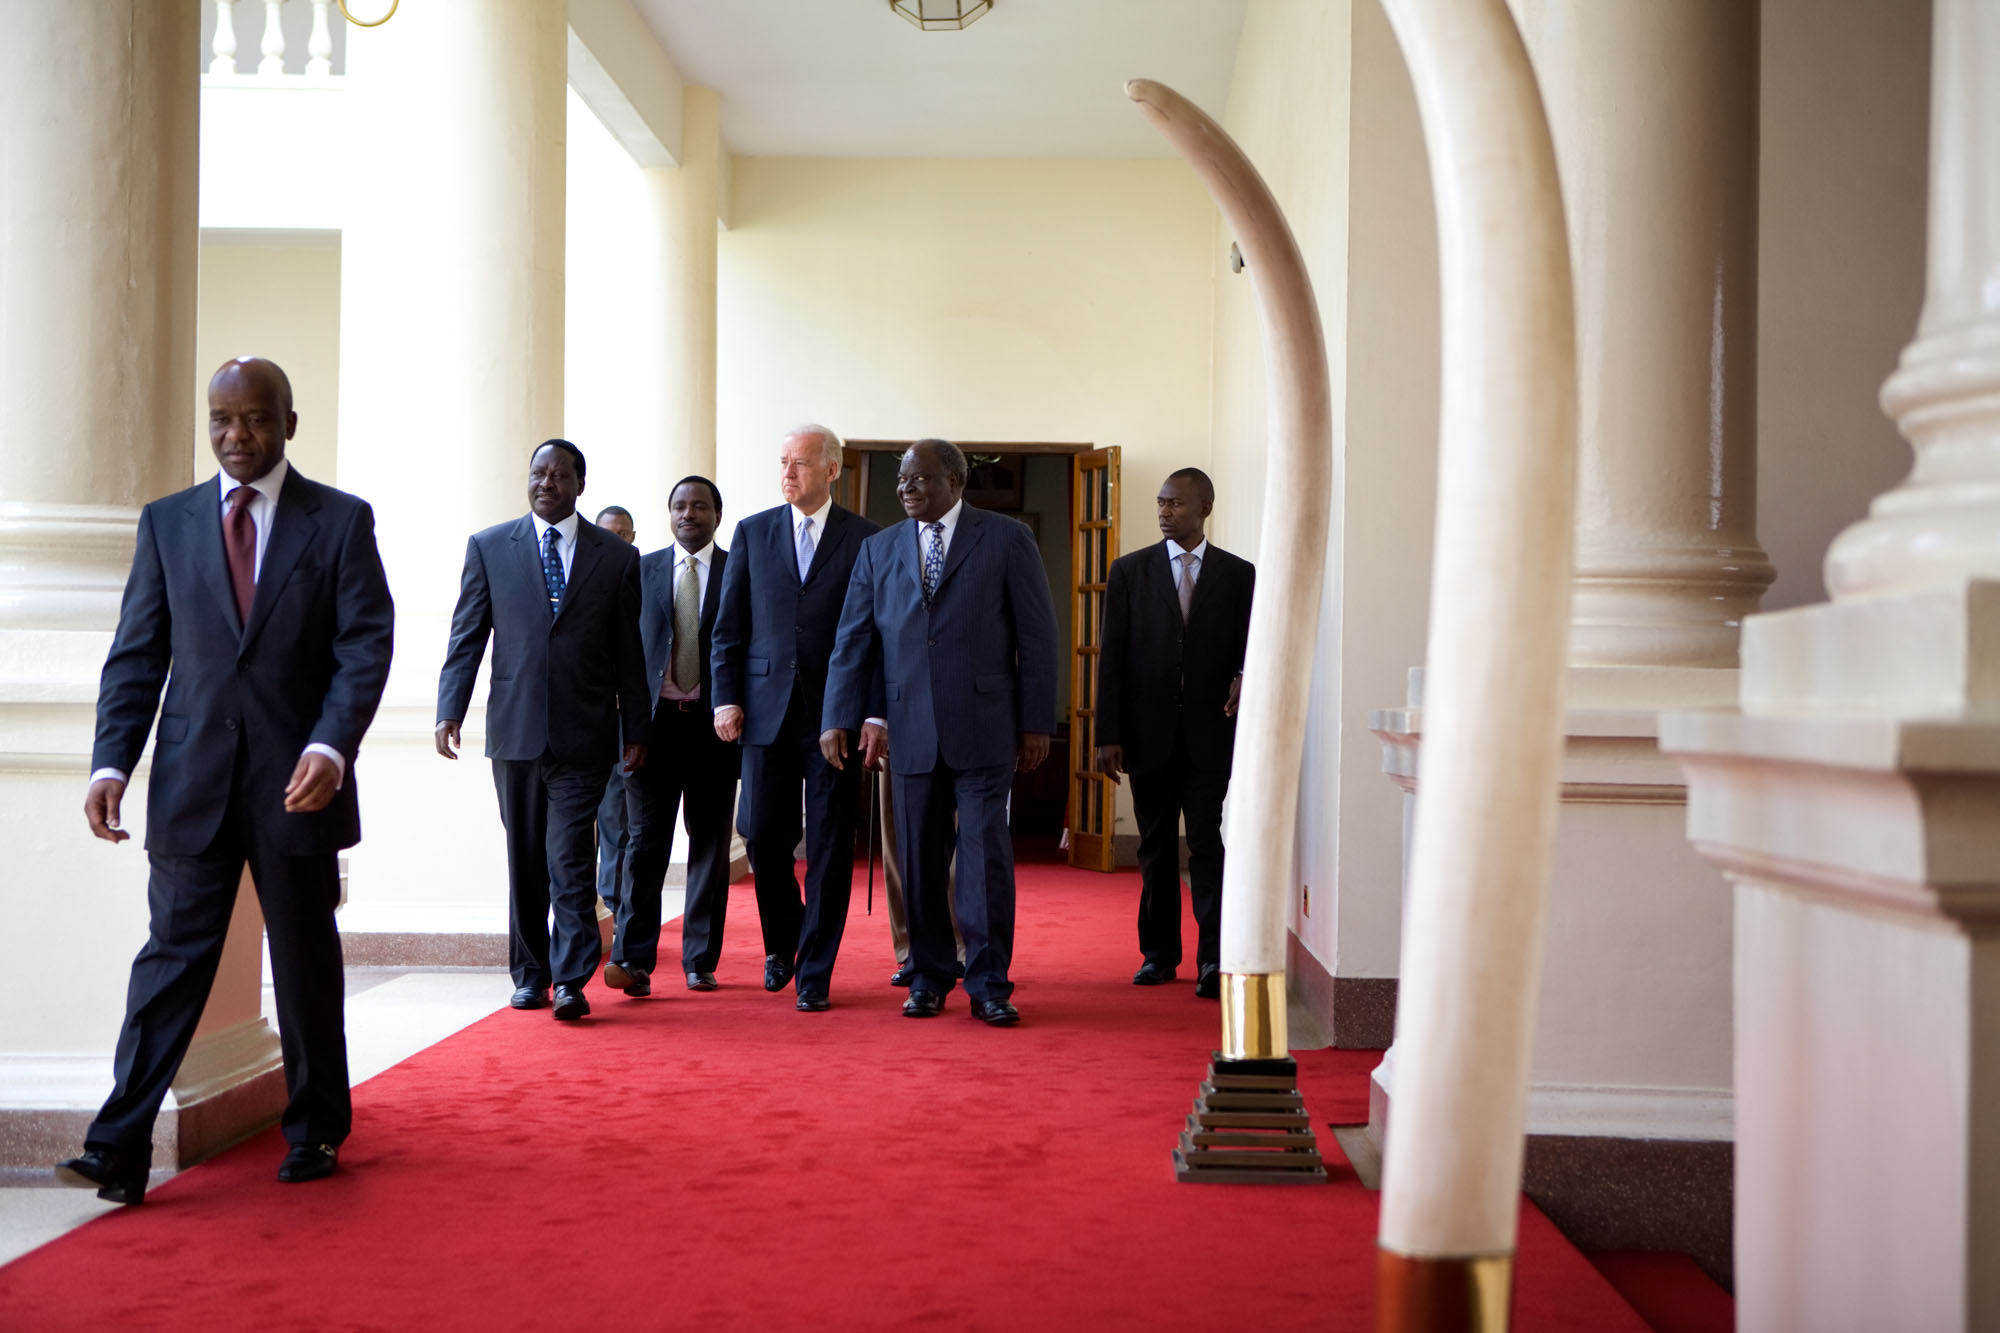 Vice President Joe Biden Walks with President Mwai Kibaki and Prime Minister Raila Odinga